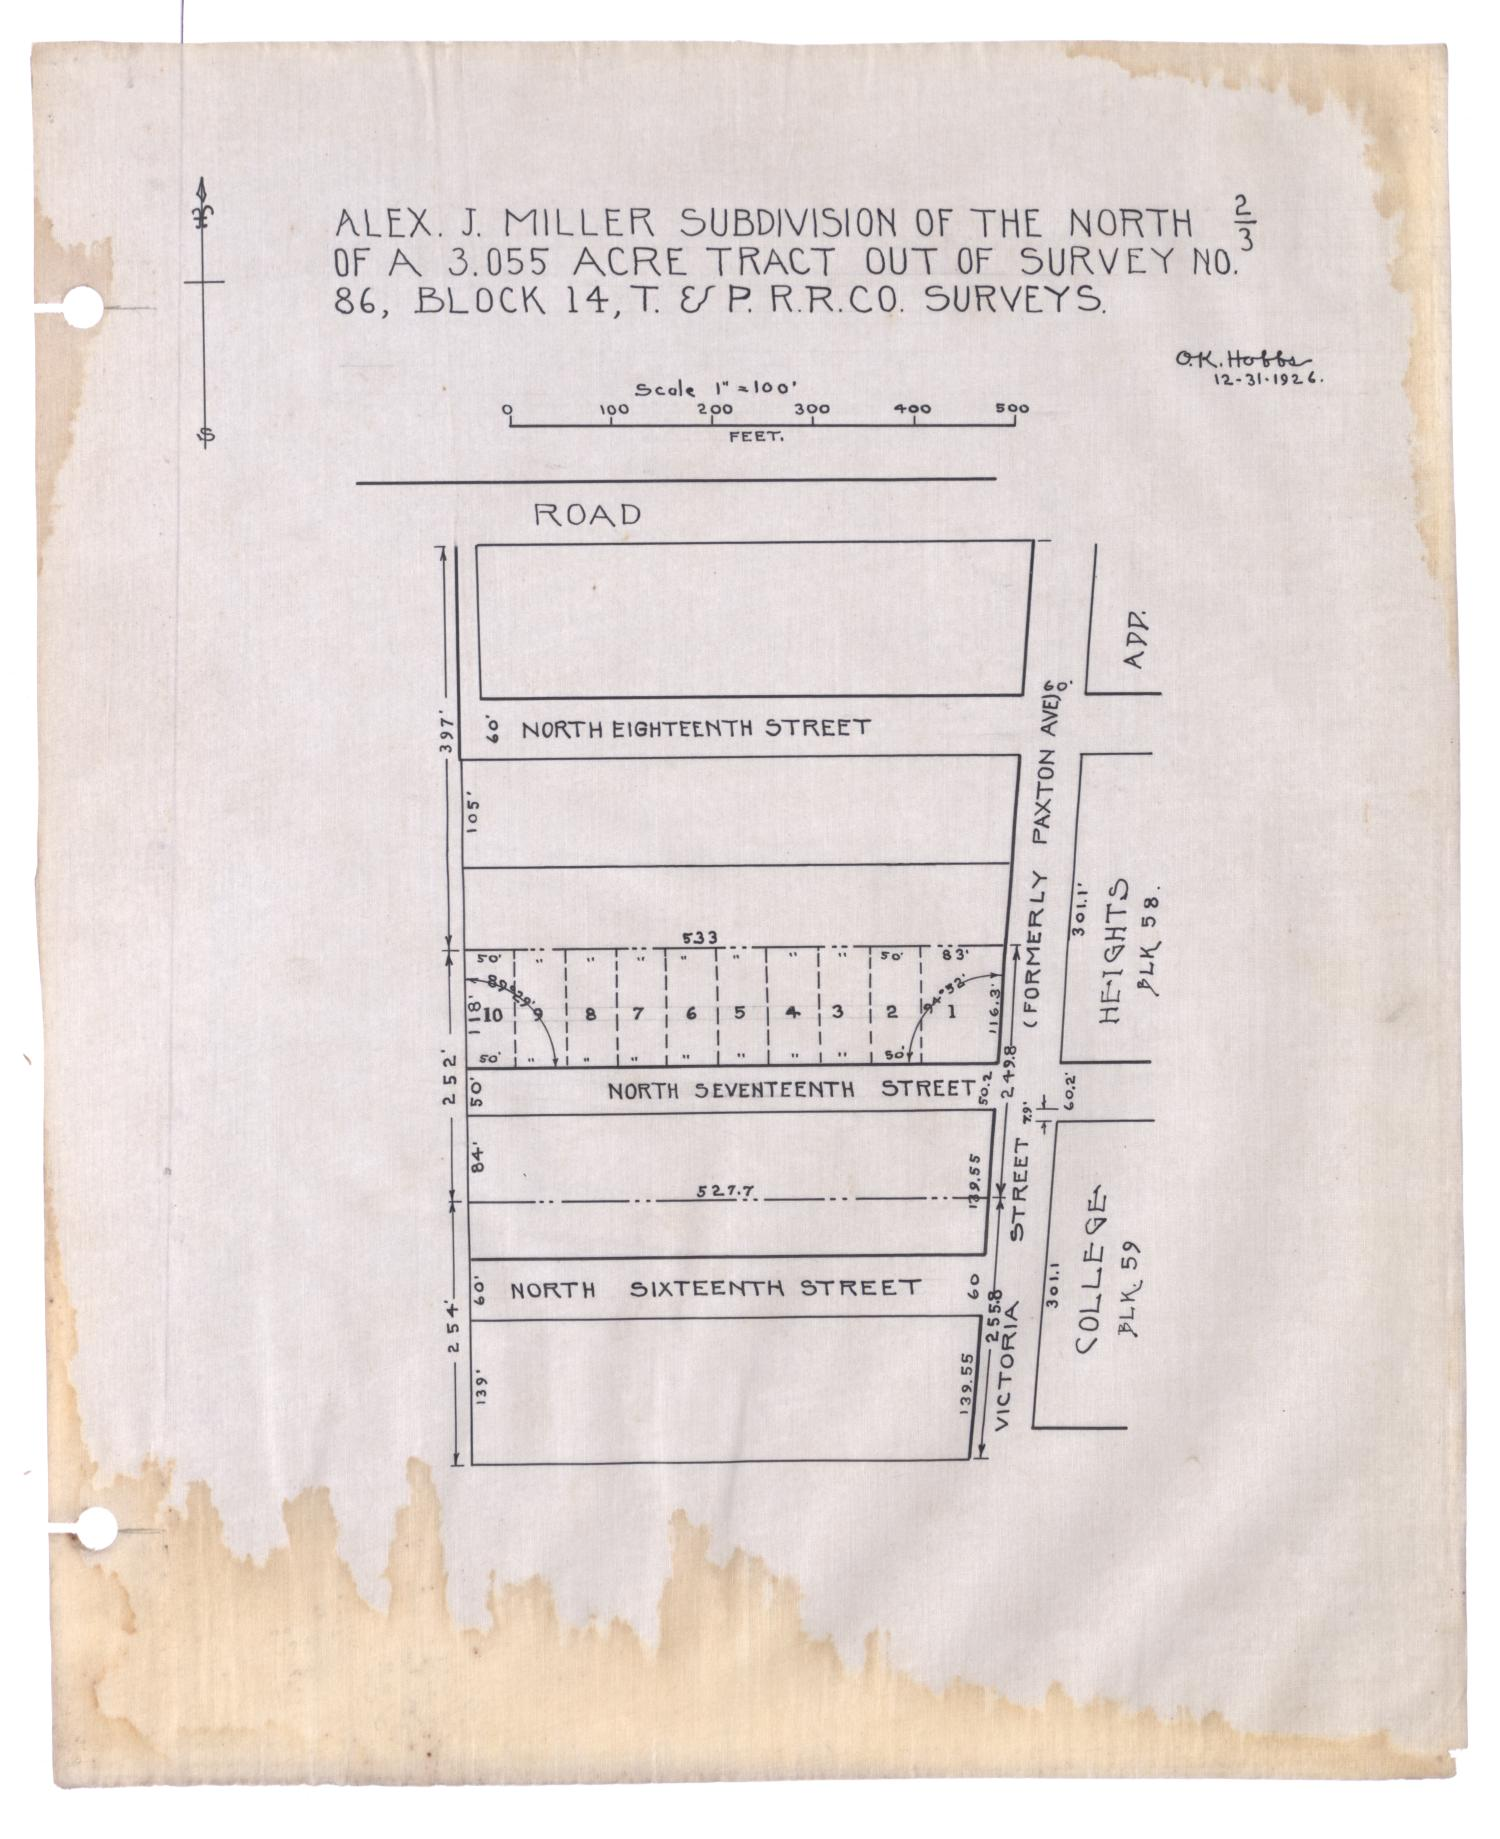 Alex J. Miller Subdivision of the North Two-Thirds of a 3.055 Acre Tract out of Survey Number 86, Block 14, Texas & Pacific Railroad Company Surveys [#2]                                                                                                      [Sequence #]: 1 of 2